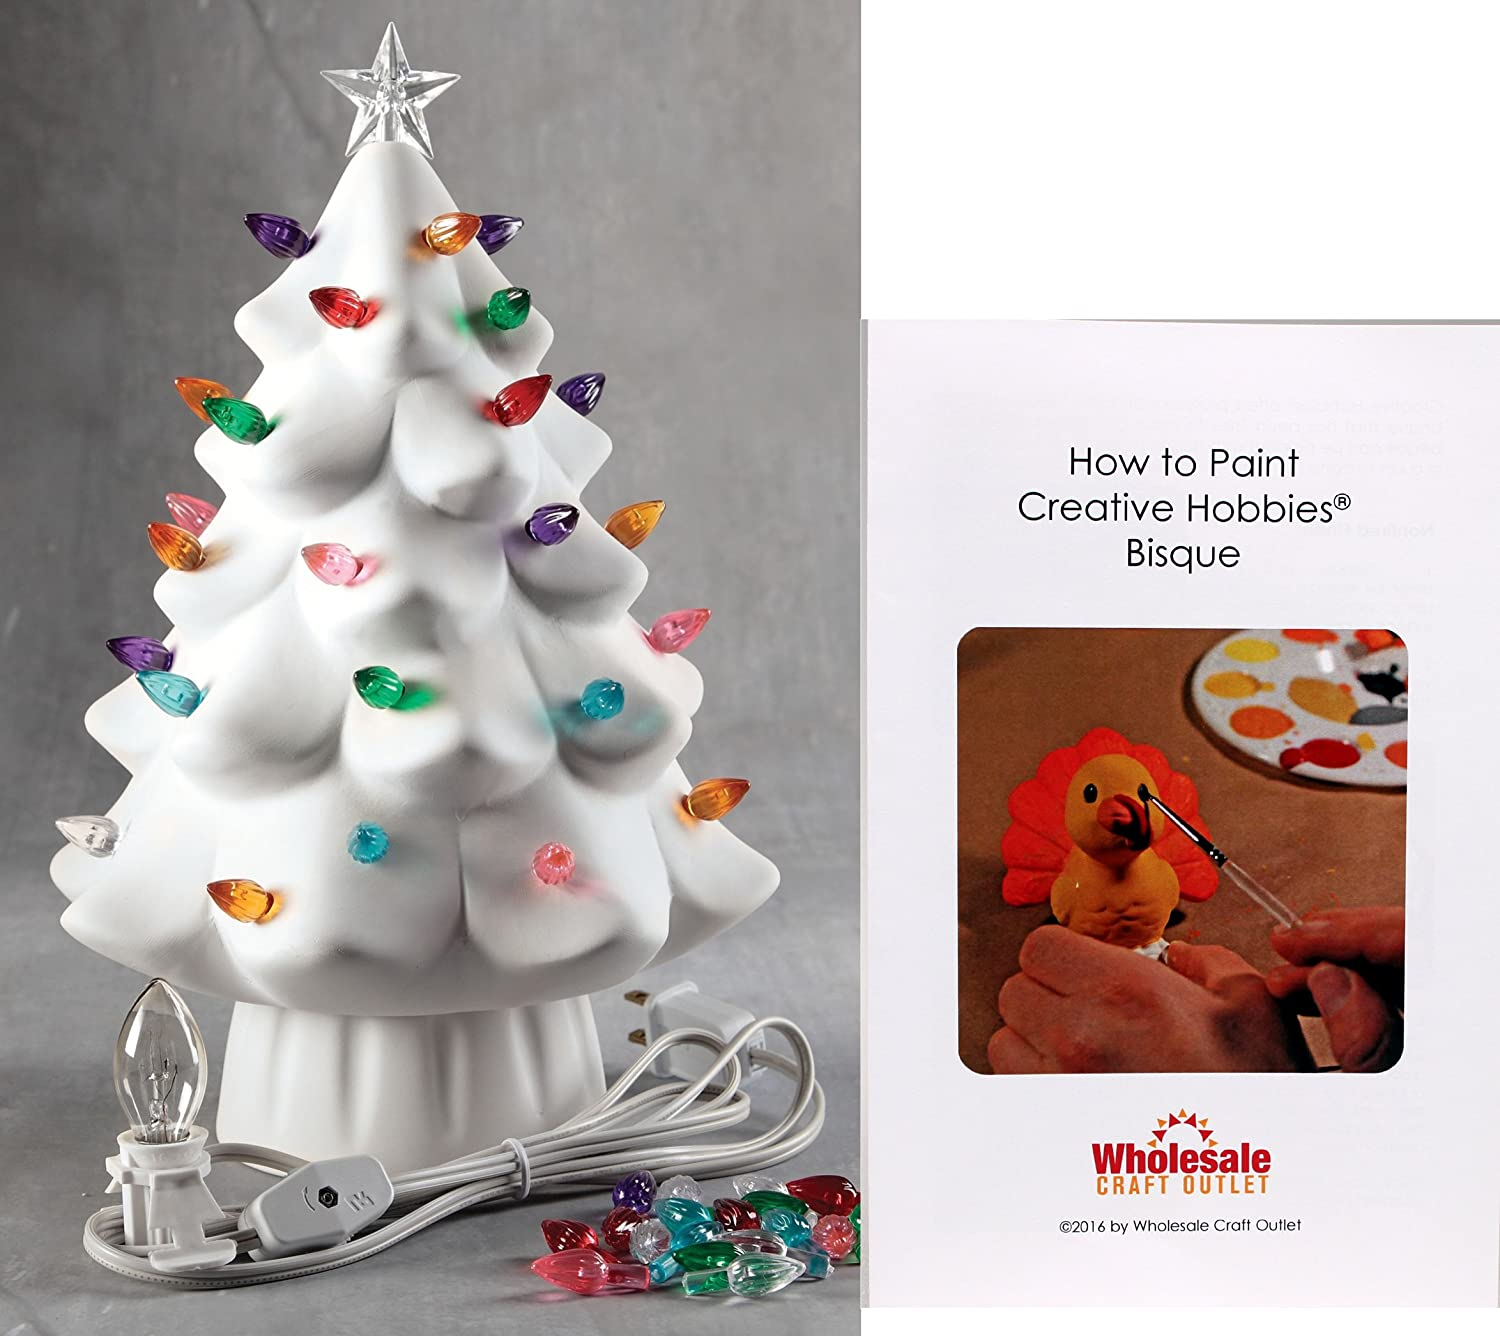 Creative Hobbies 11 Inch Tall Ceramic Bisque Light Up Christmas Tree Ready To Paint Includes Electrical Cord Bulb Twist Lites Star How To Paint